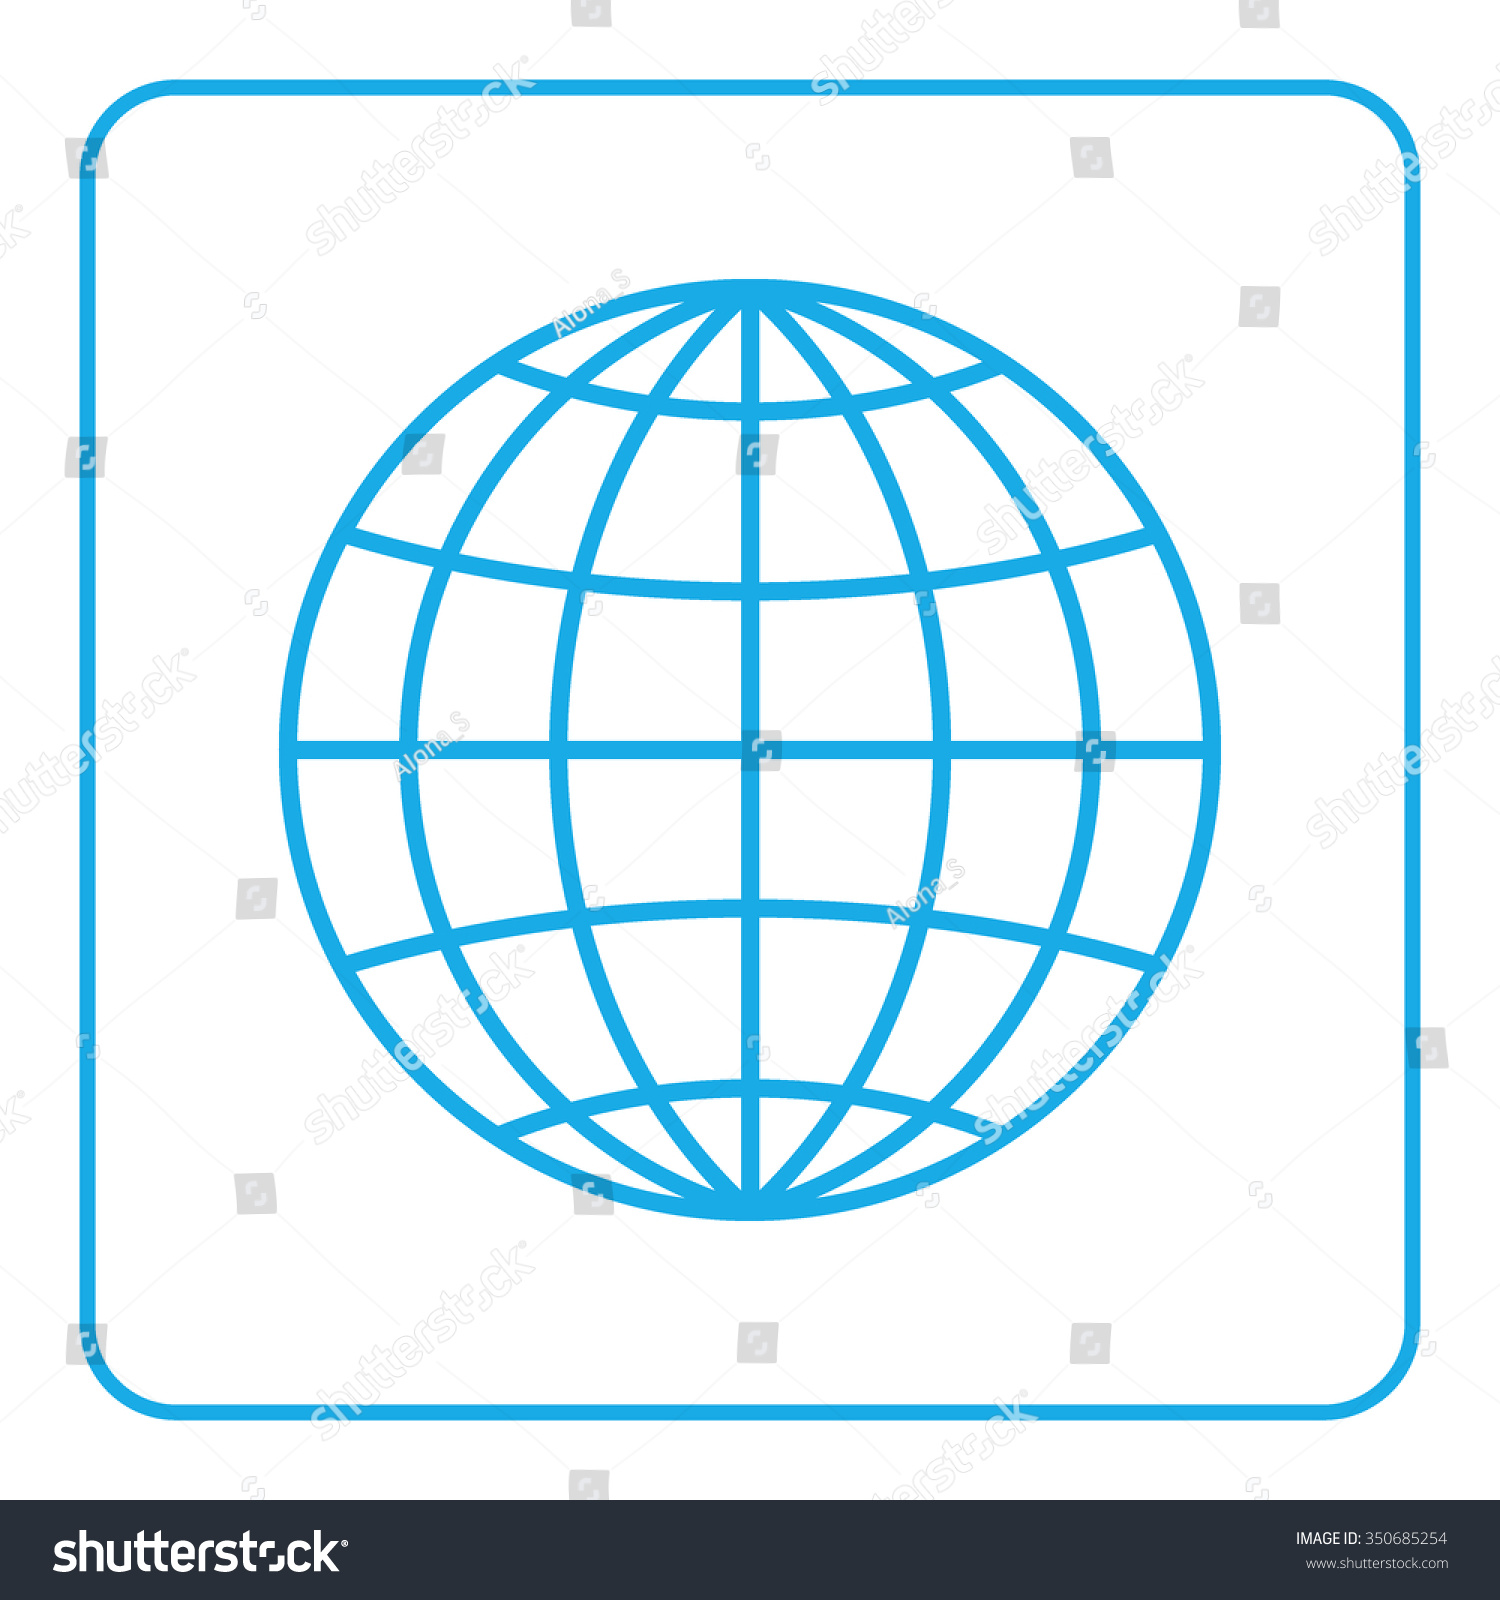 Deciding stock illustrations royalty free gograph - Symbol Of Network Planet Geography